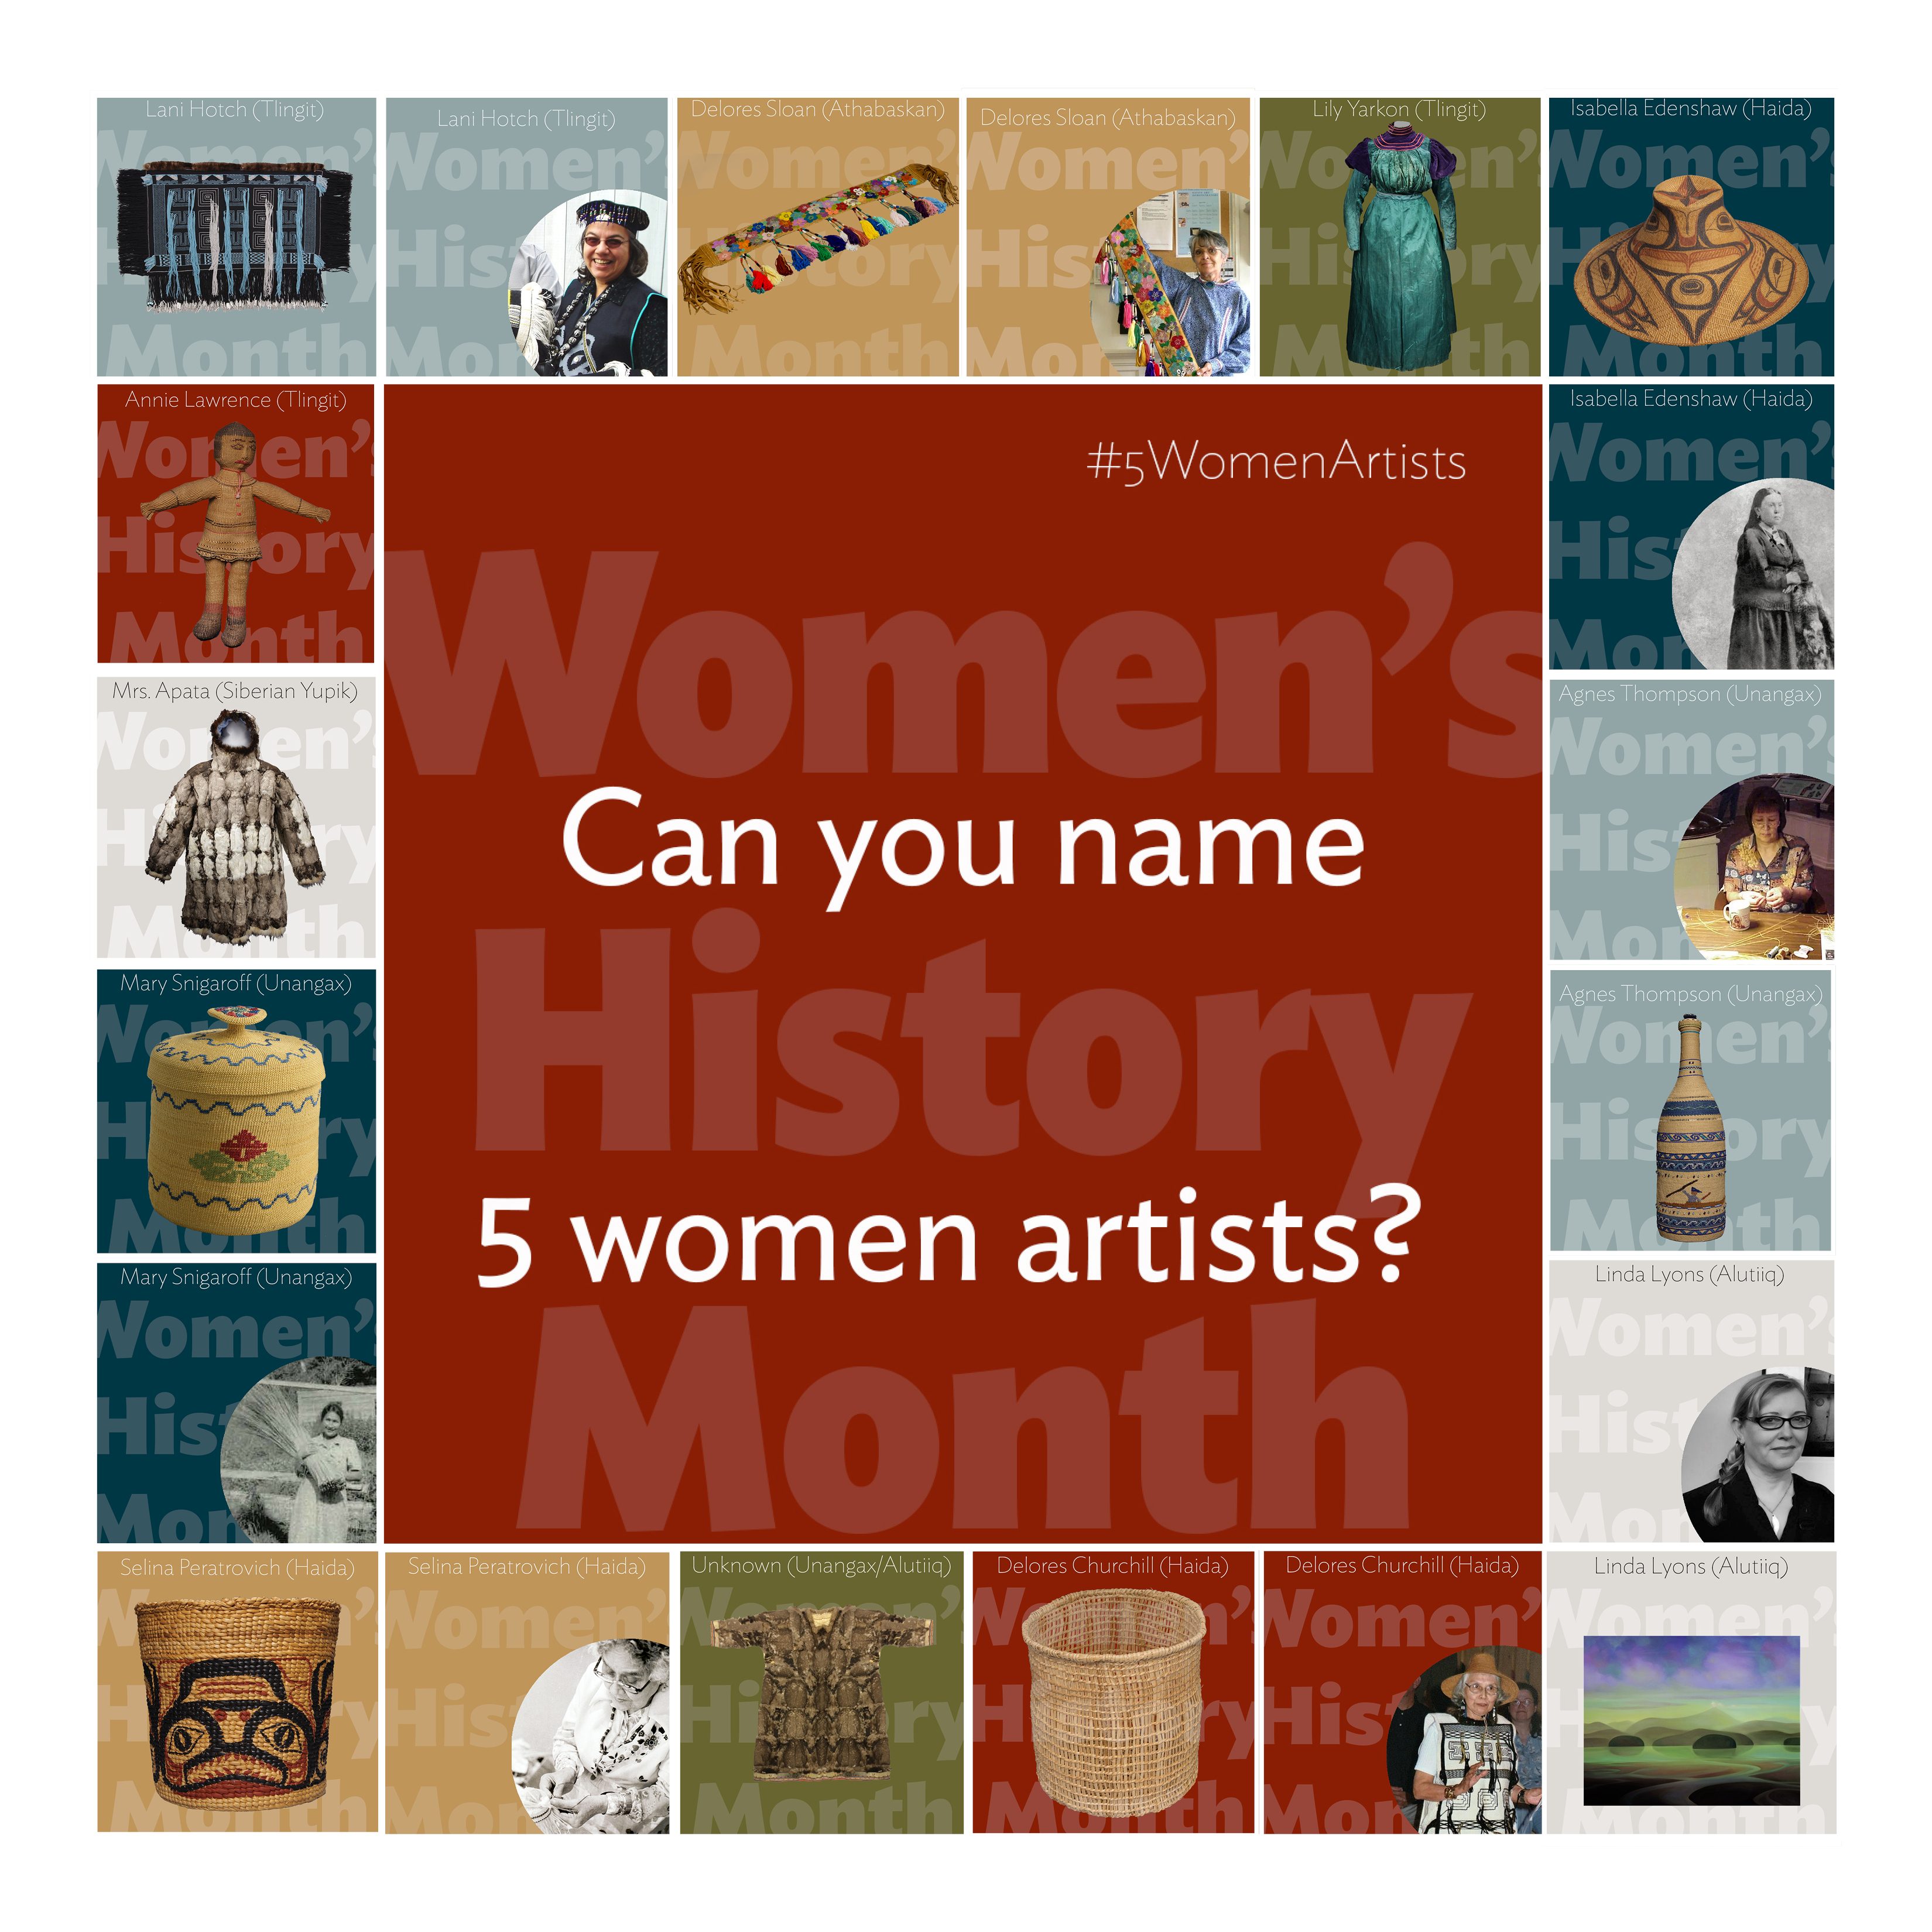 Women's History Month: Can you name 5 women artists?